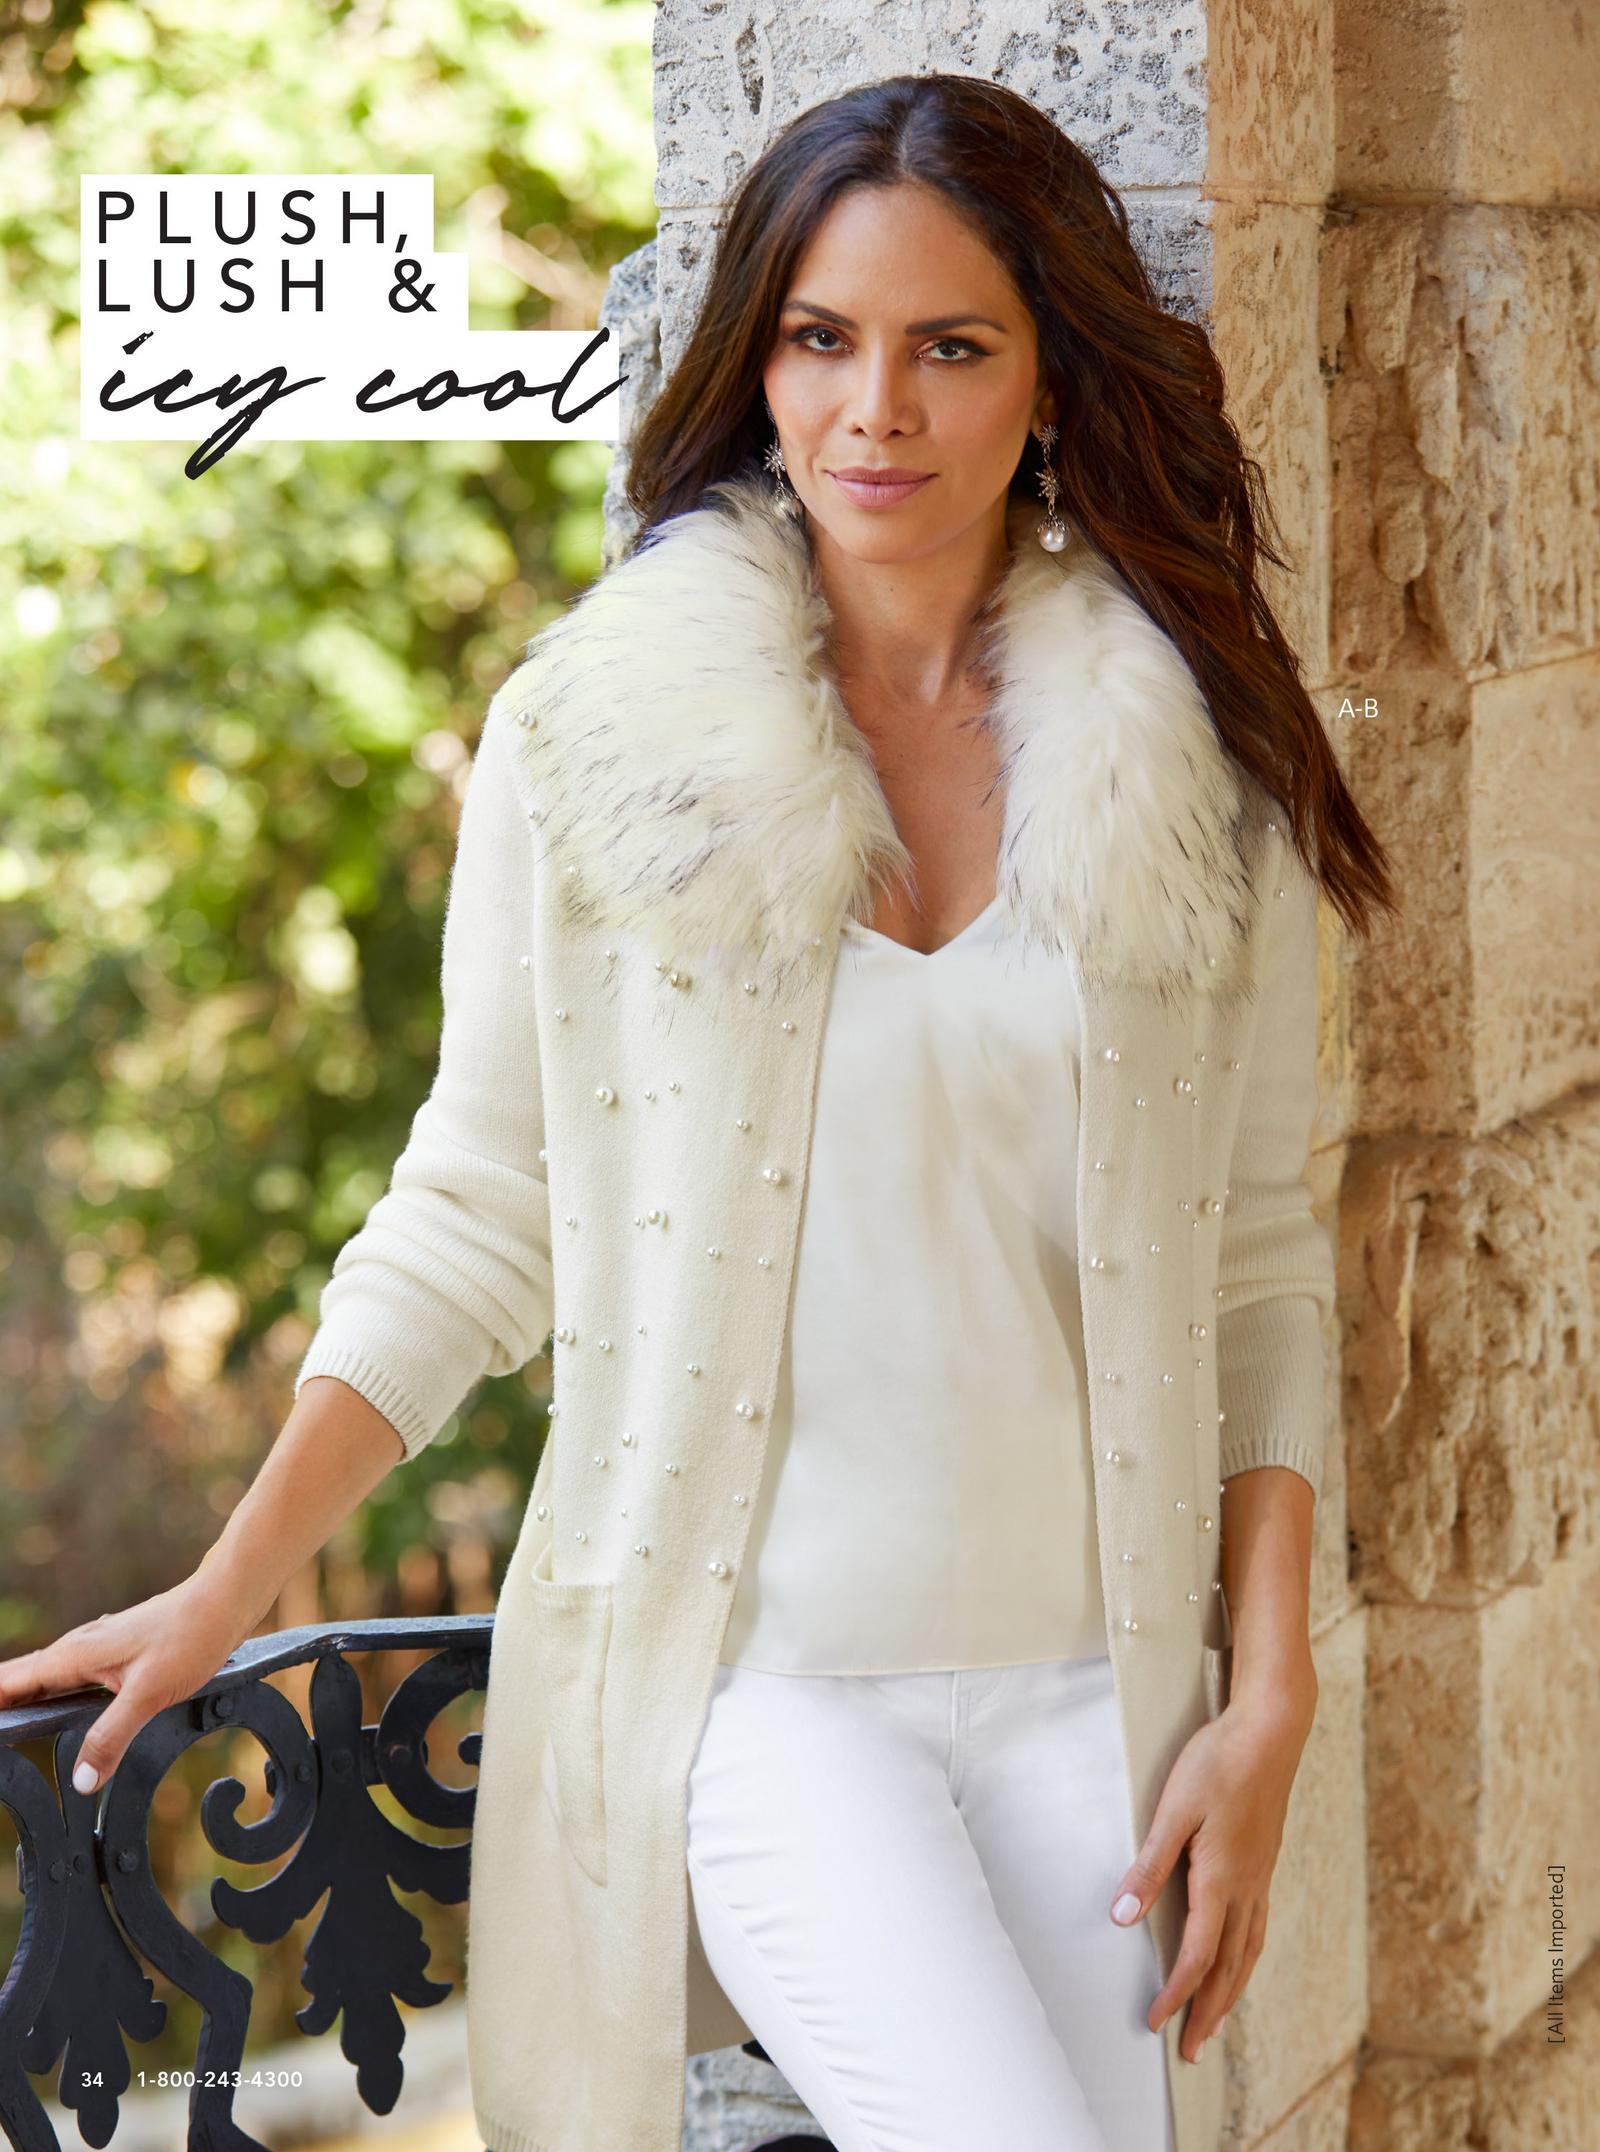 model wearing pearl studded faux fur cardigan in cream over white tank top and white jeans.